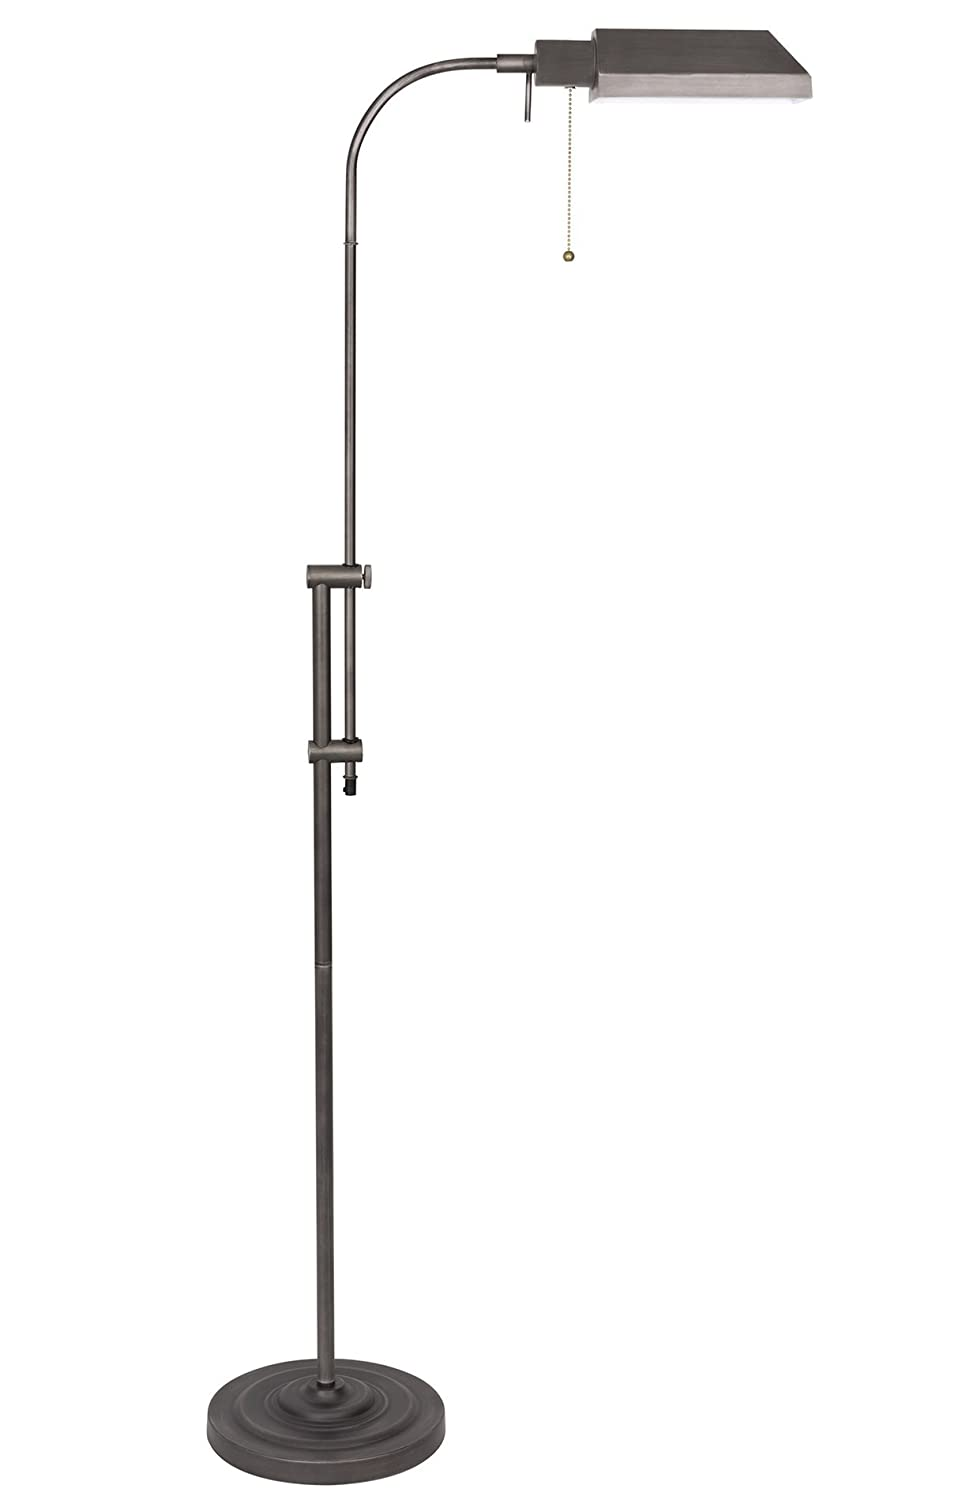 "Kira Home Prescott 58"" Adjustable Standing Pharmacy Floor Lamp, Brushed Pewter Finish, Includes 6W LED Bulb (60W eq.) Energy Efficient, Eco-Friendly"